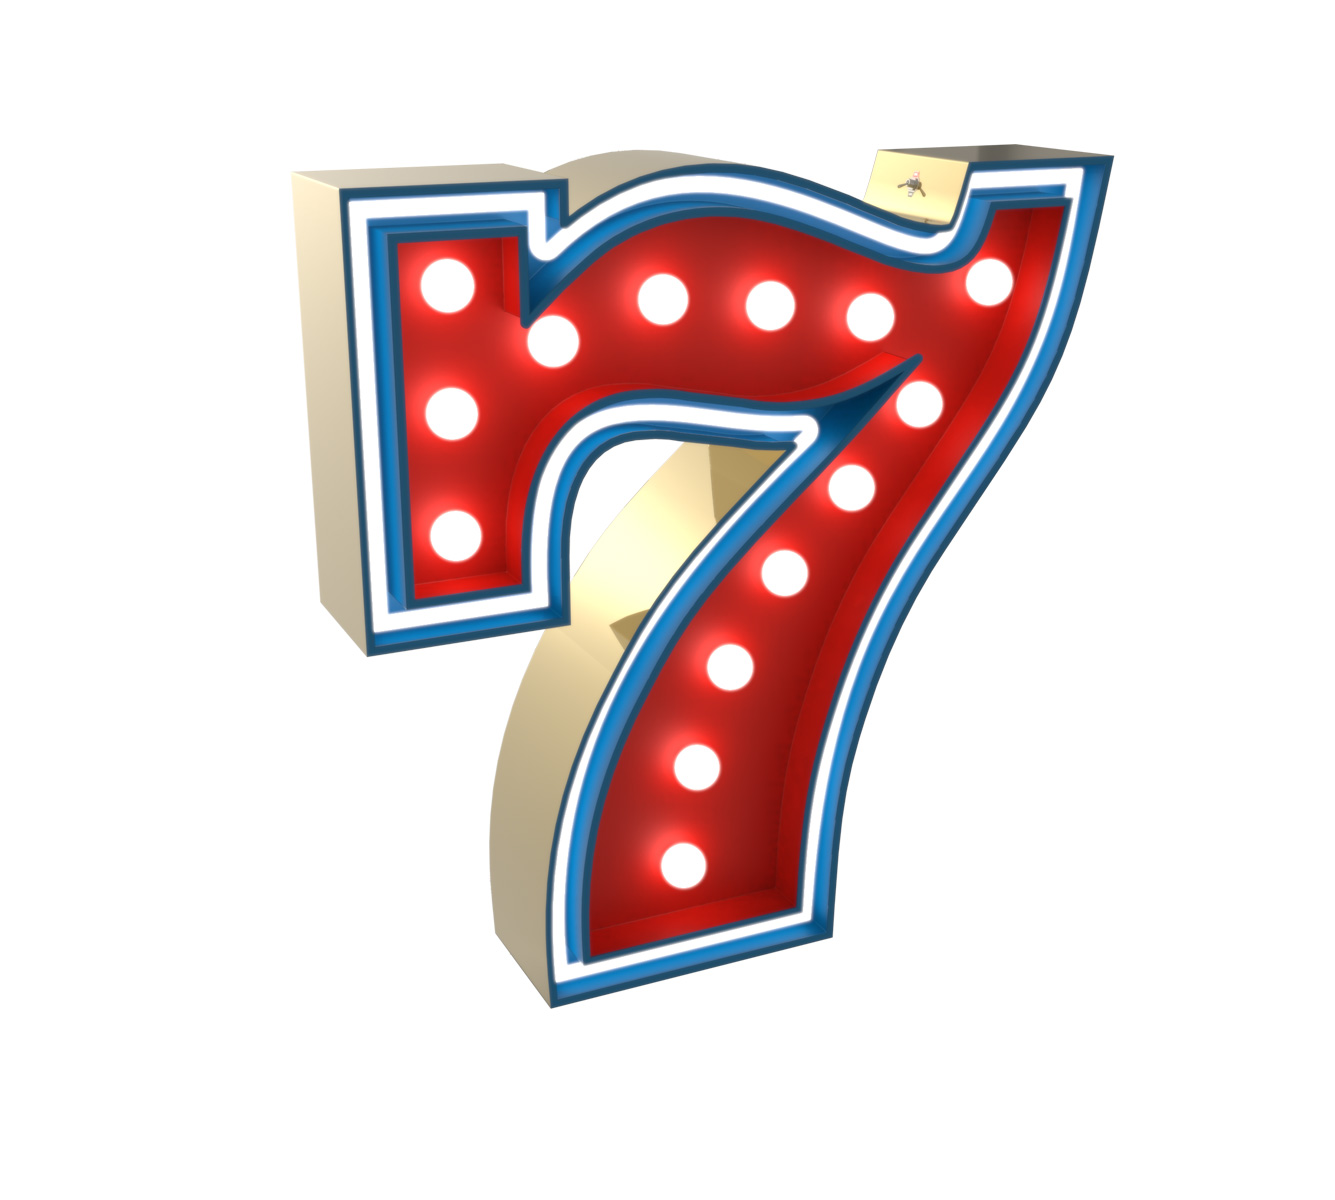 7 Number Graphic Lamp By Delightfull